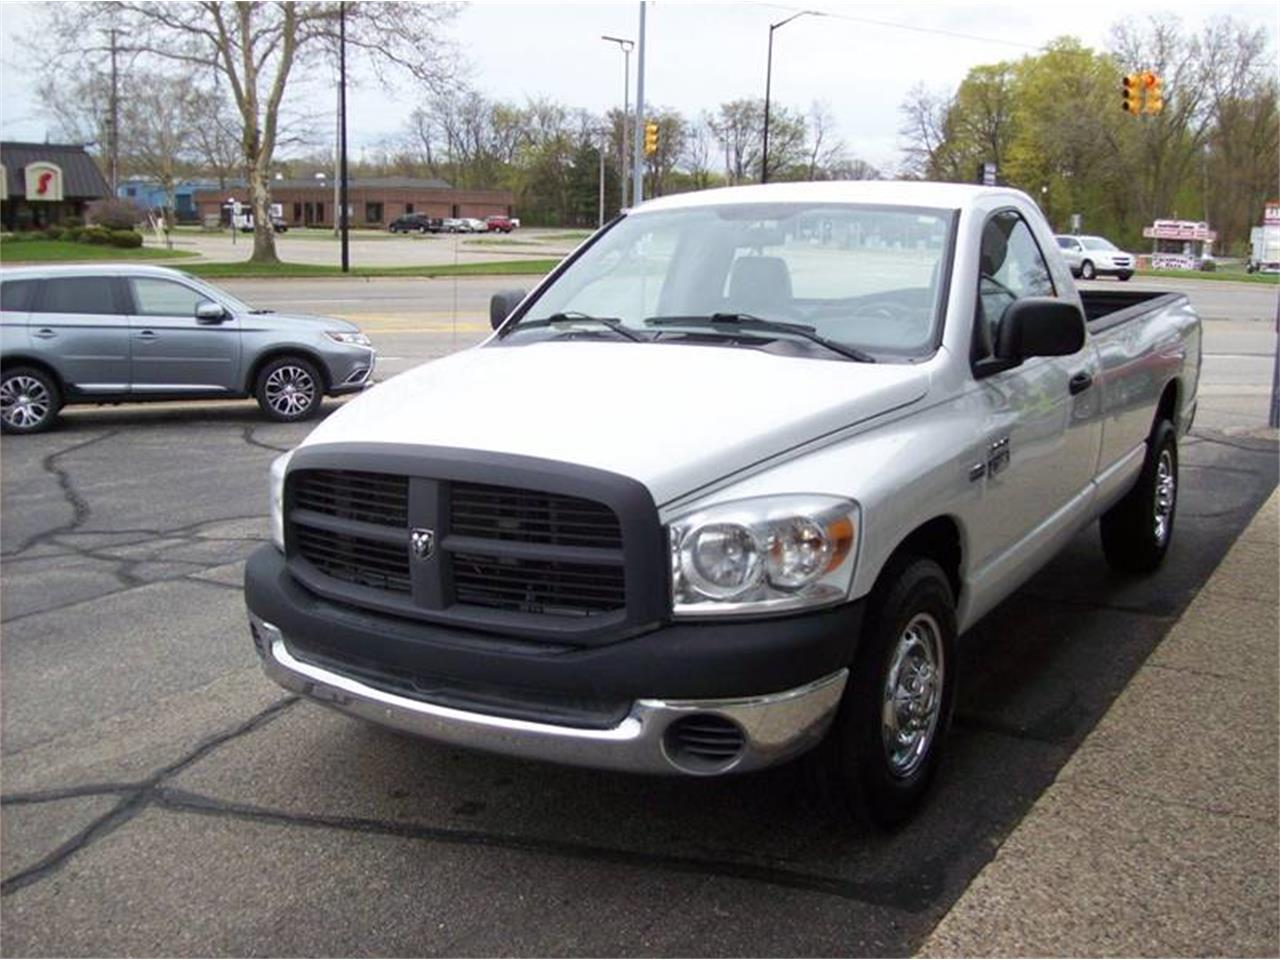 Large Picture of '07 Ram 2500 Offered by Verhage Mitsubishi - Q19T